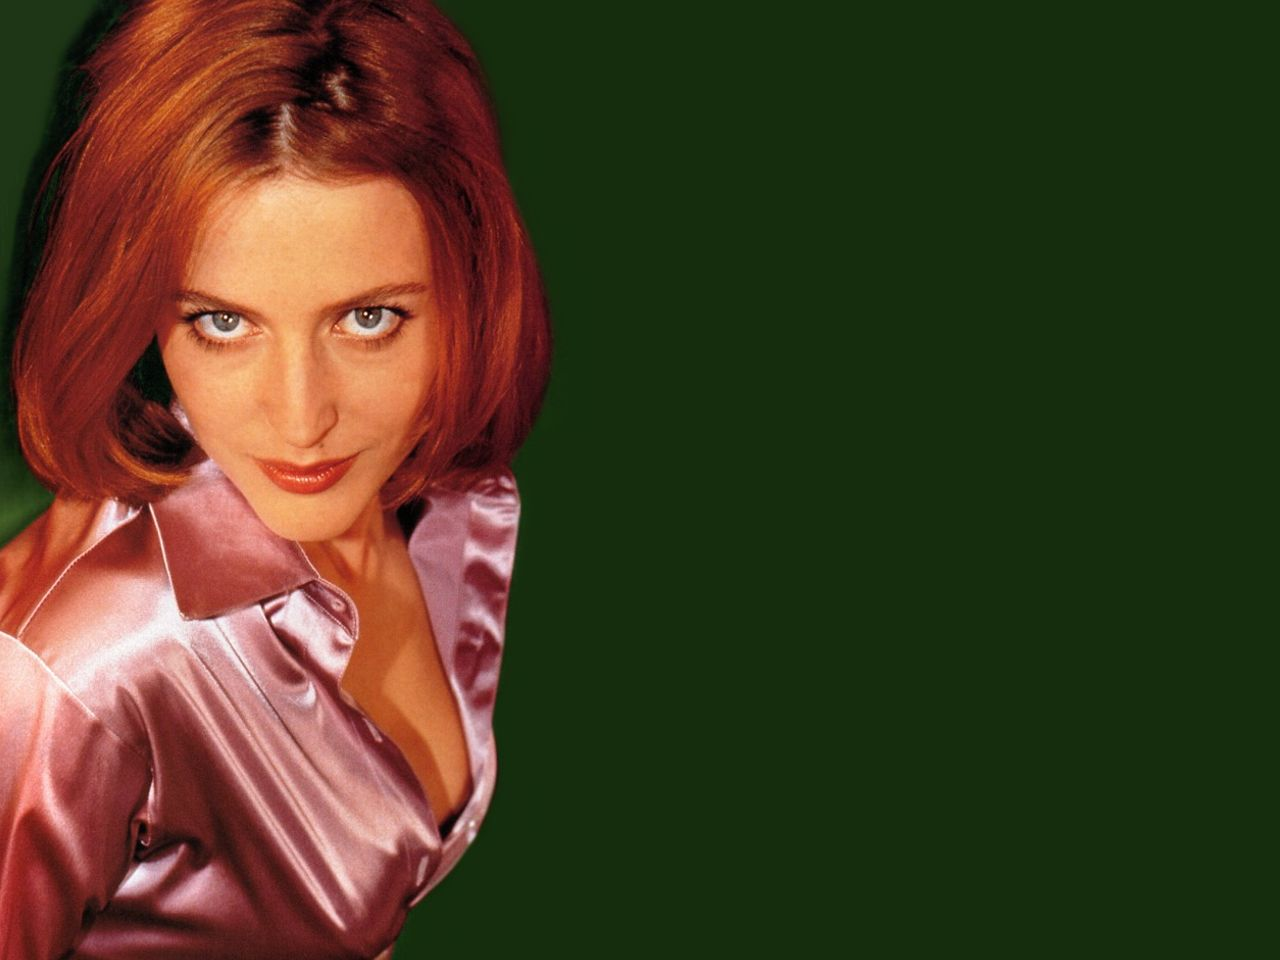 1280x960 - Gillian Anderson Wallpapers 32